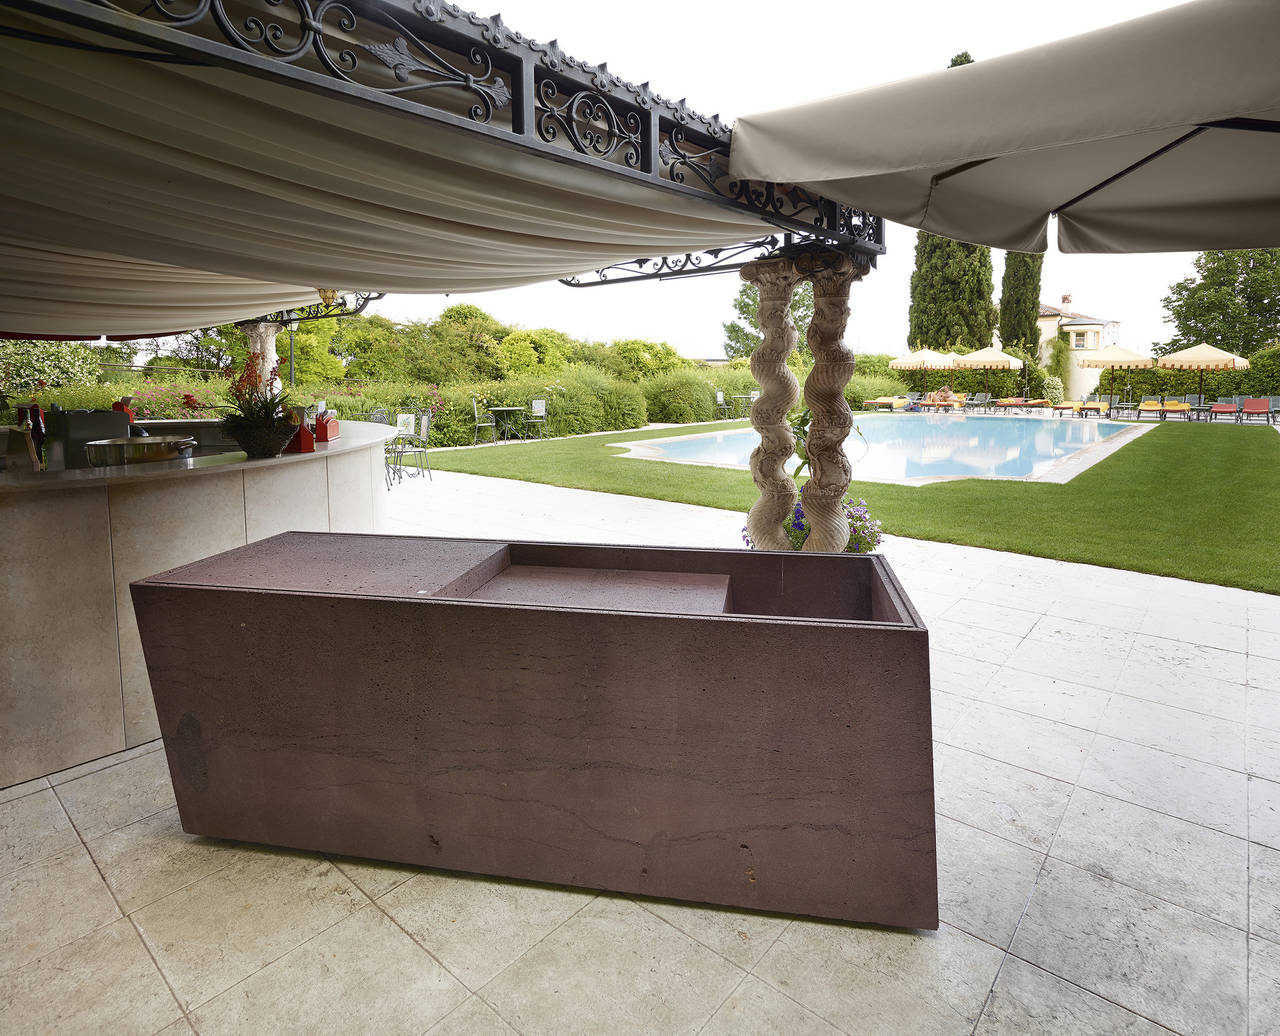 Cucine luxury outdoor | Ambiente Cucina